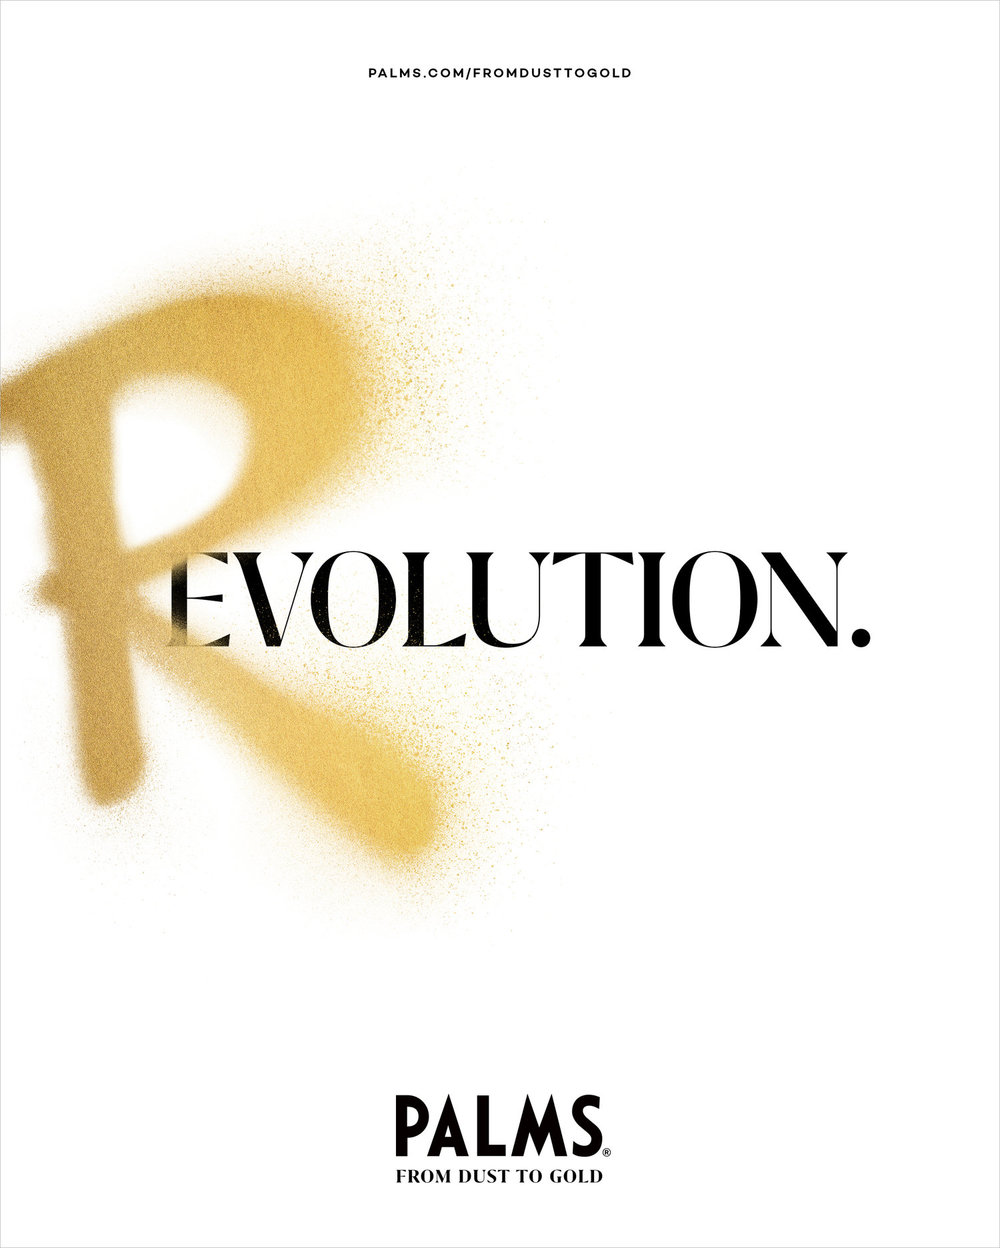 6_Palms-Print-Revolution+copy.jpg